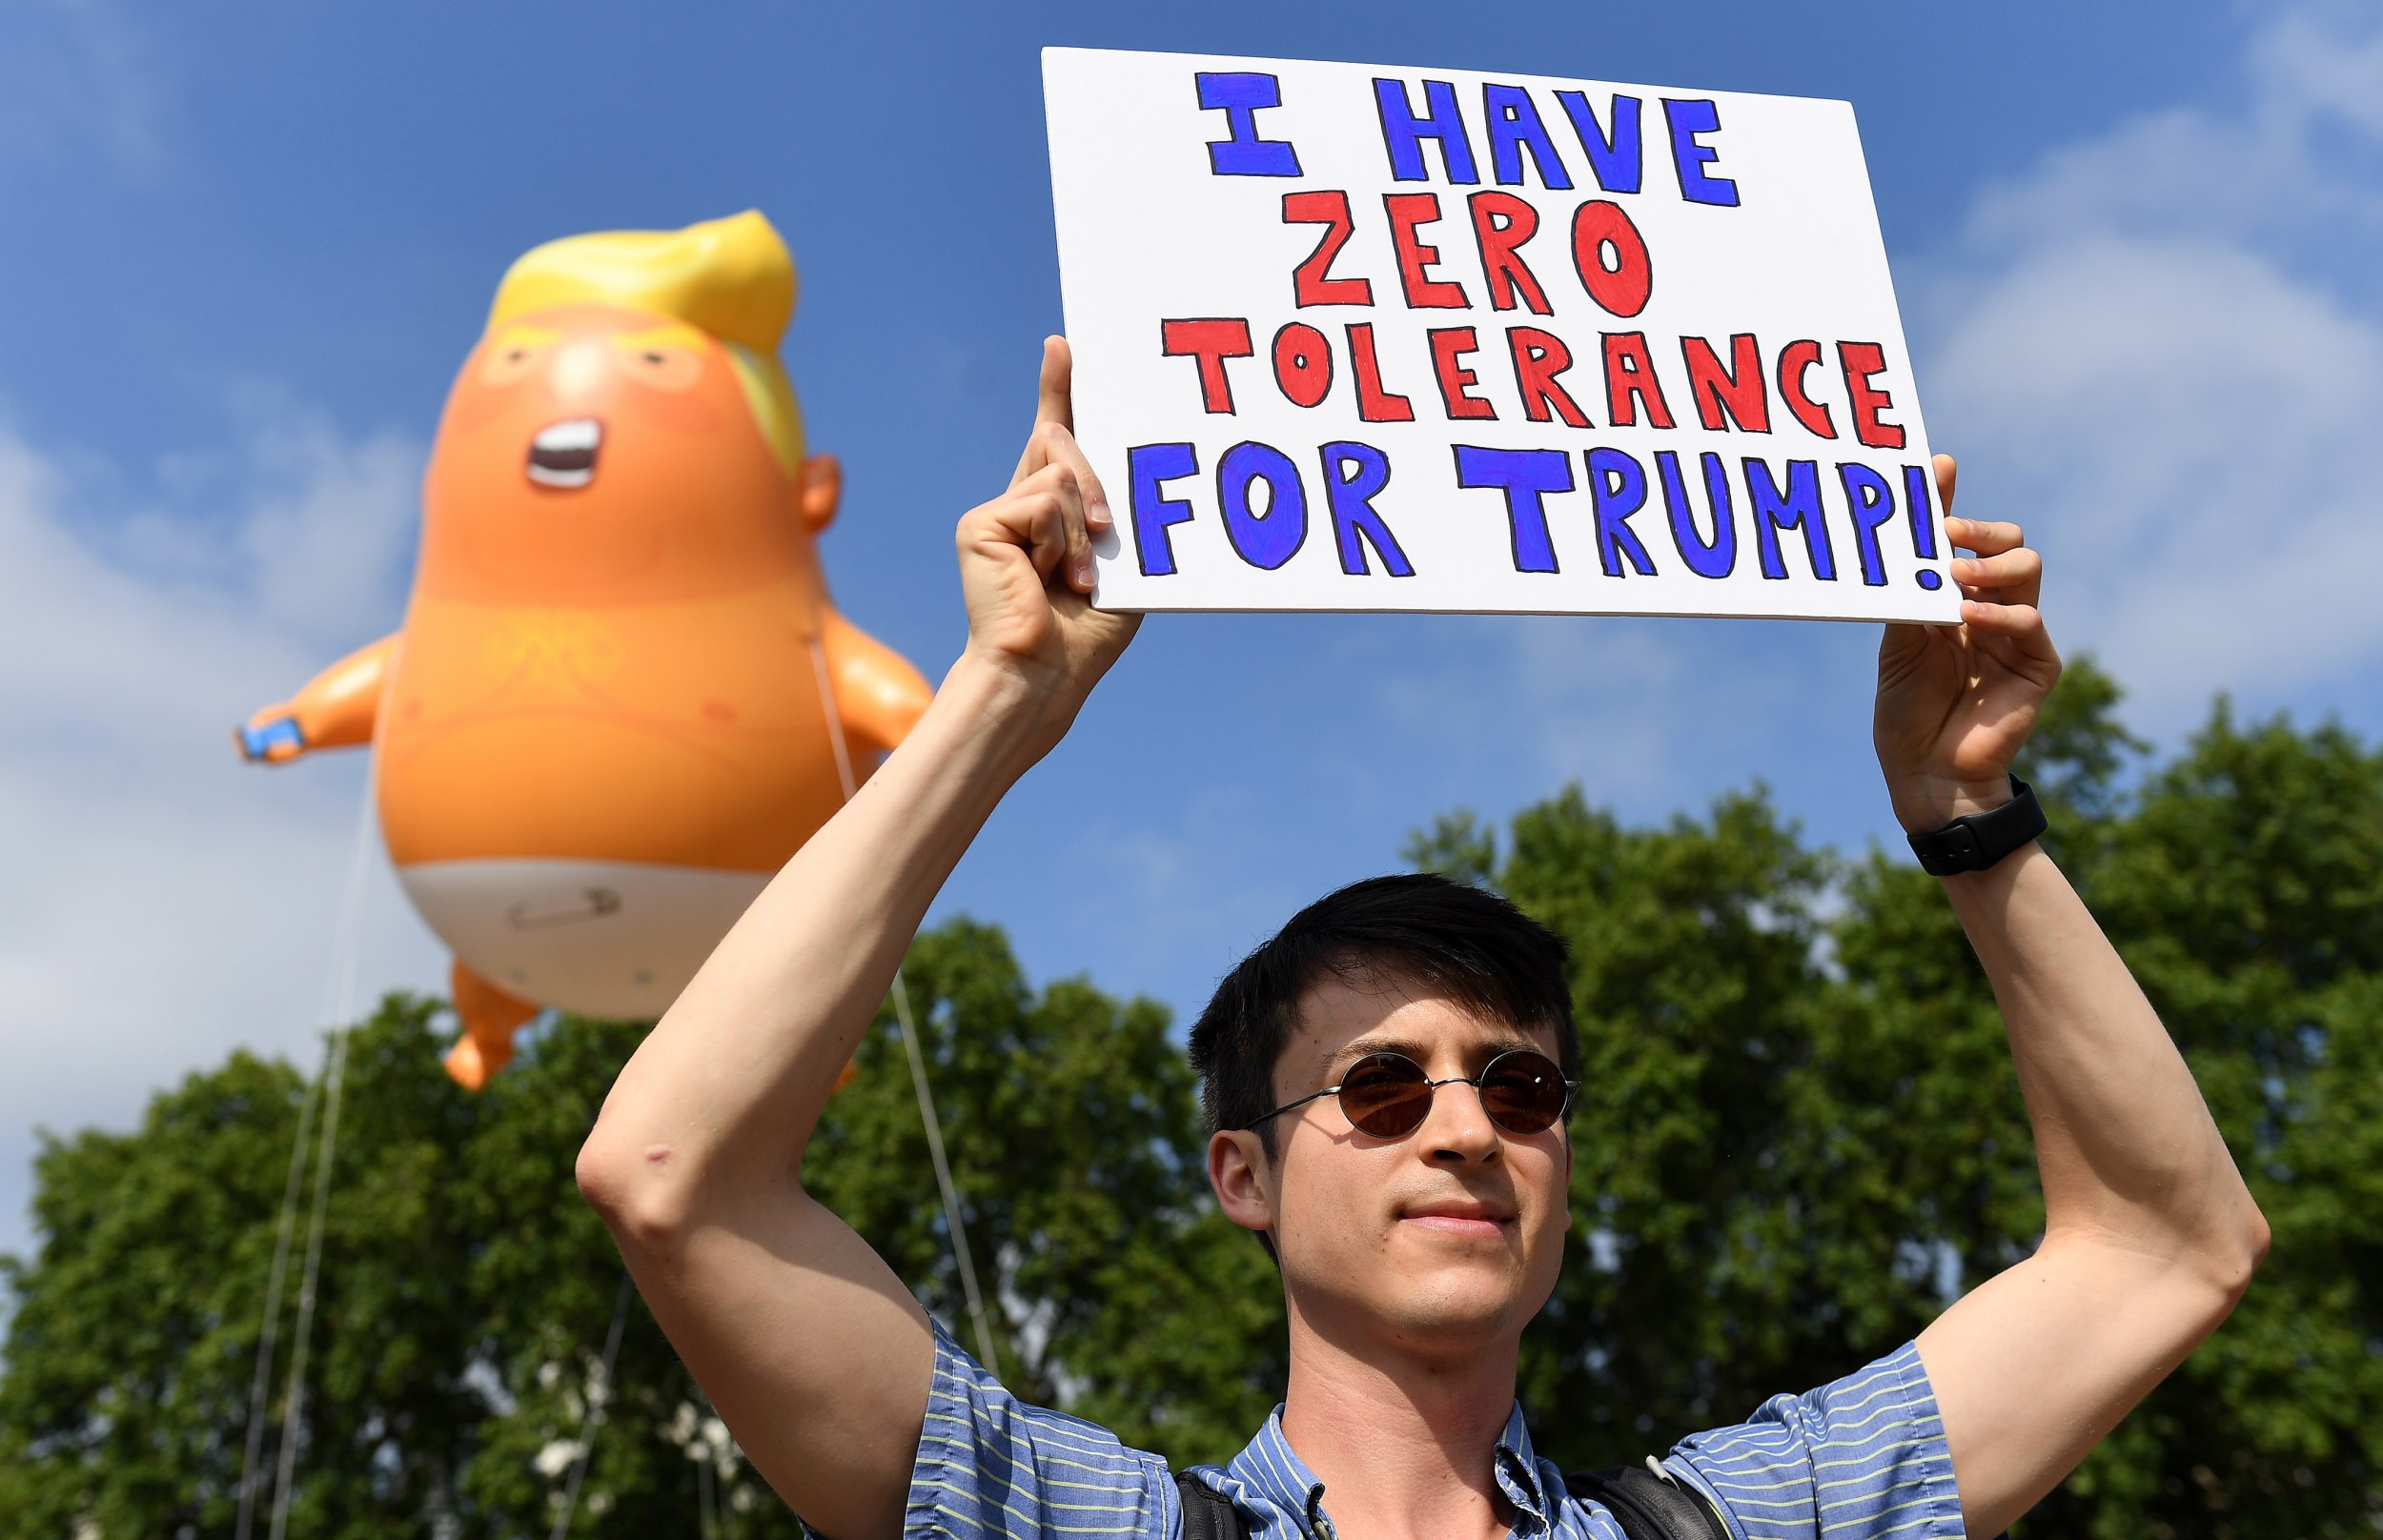 epa06885217 A protesters holds up a banner reading 'I have zero tolerance for Trump' as the 'Donald Trump Baby Blimp' balloon flies over Parliament Square during a protest in London, Britain, 13 July 2018. The inflatable dubbed 'Trump Baby' tied to a spot in Parliament Square is to kick off a day of protests against US President Donald J. Trump's visit. Trump is on a working visit to Britain. EPA/ANDY RAIN